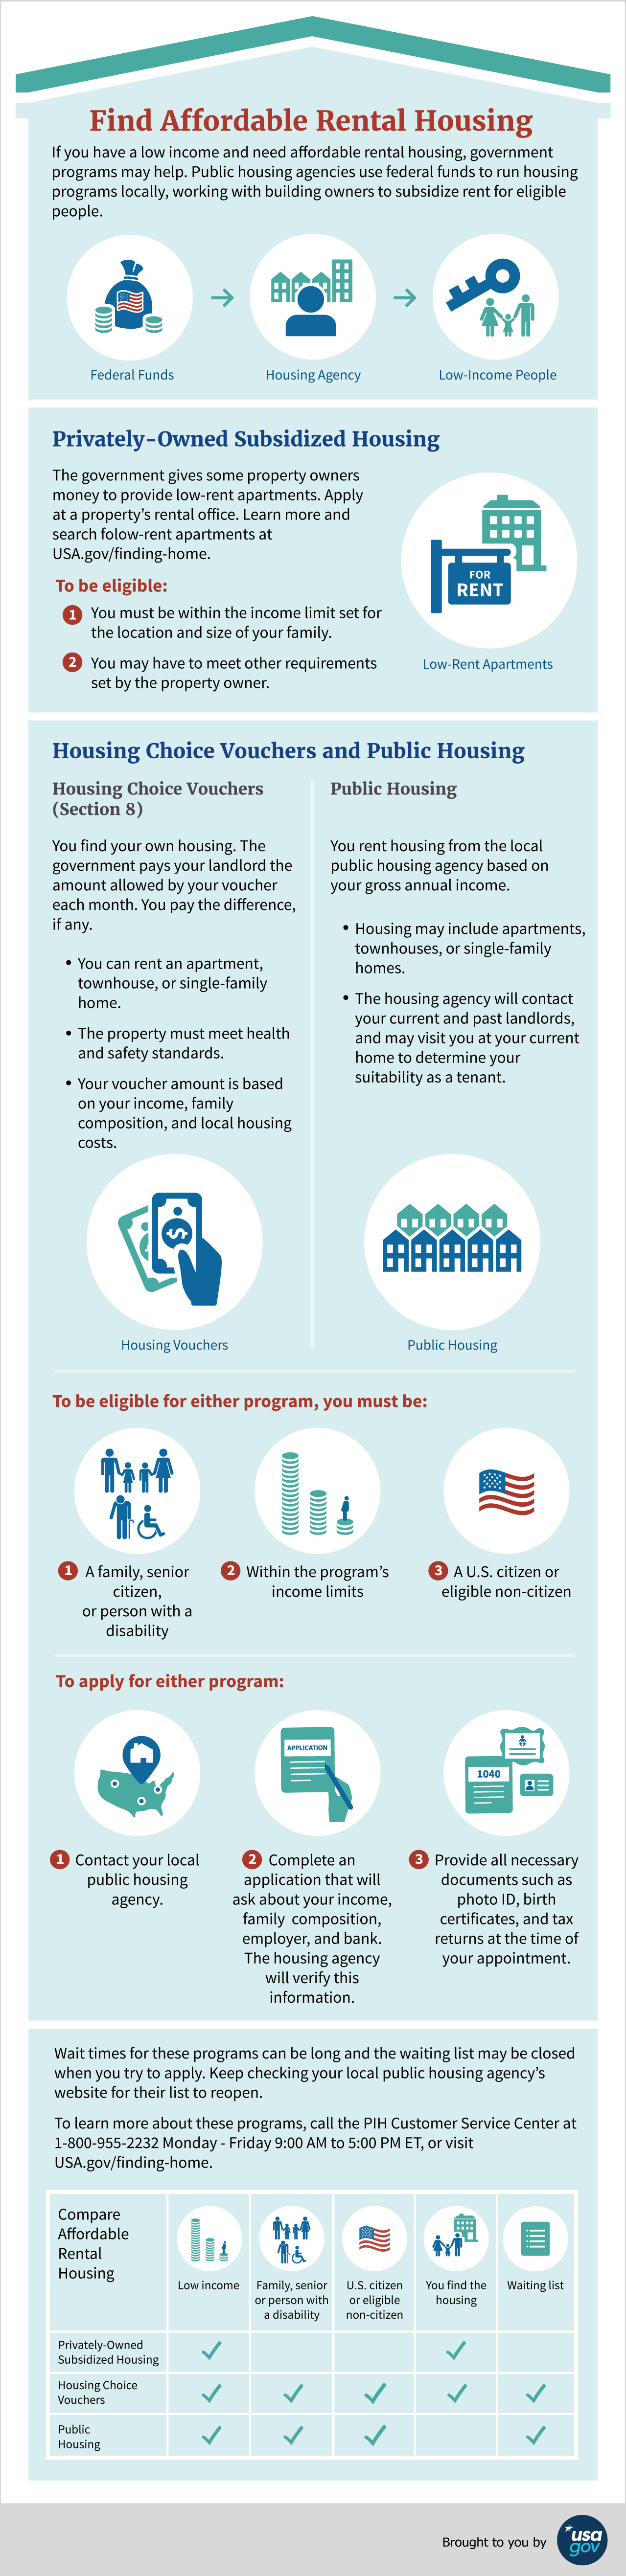 Infographic explaining three programs to help low income people get affordable rental housing.